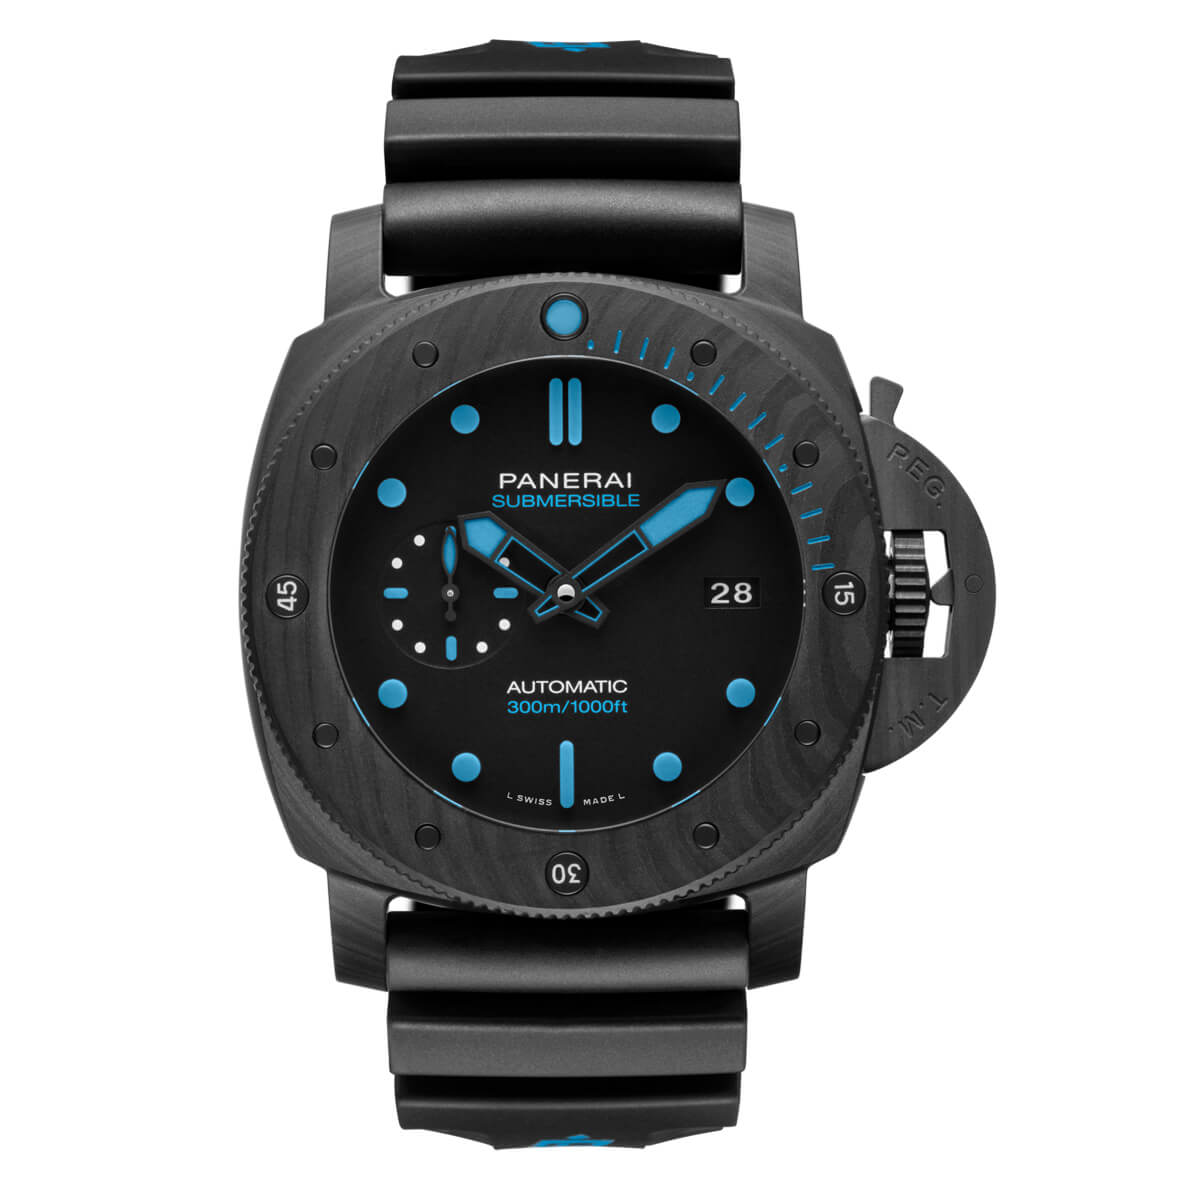 Panerai Submersible Carbotech (PAM01616)